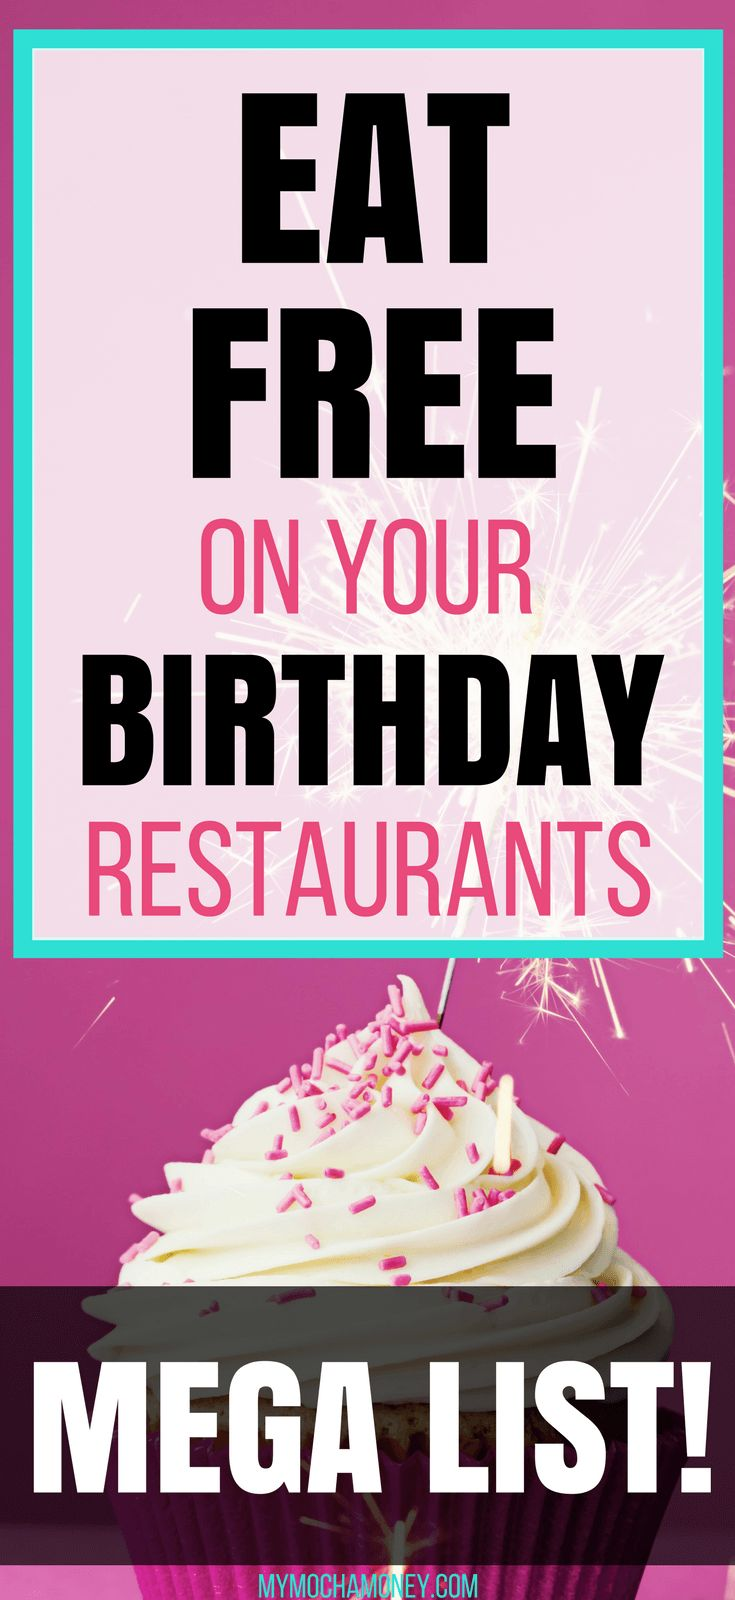 Where kids eat free on their birthday: Bob Evans offers a free kids meal for anyone under Boston Market offers a free kids meal for kids under 12 when you sign up online.